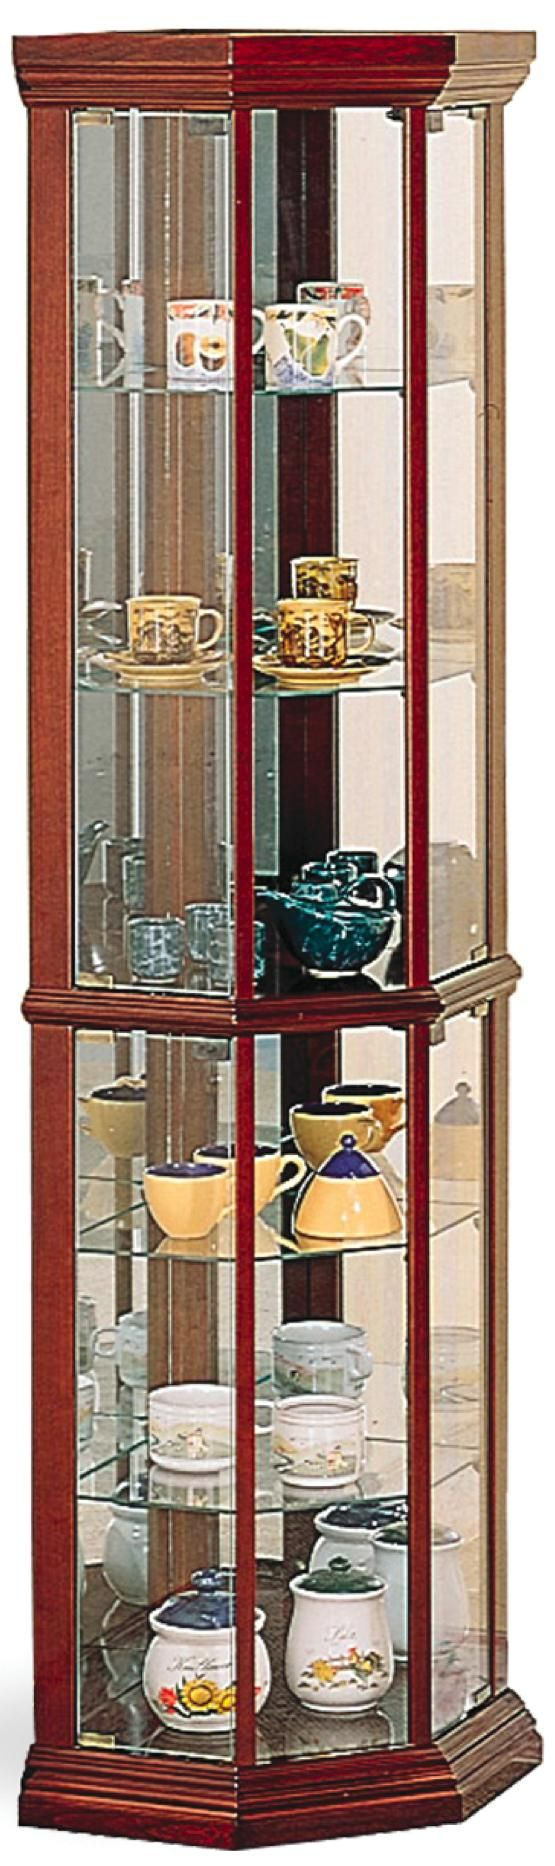 26 Best Images About Curio Cabinets On Pinterest